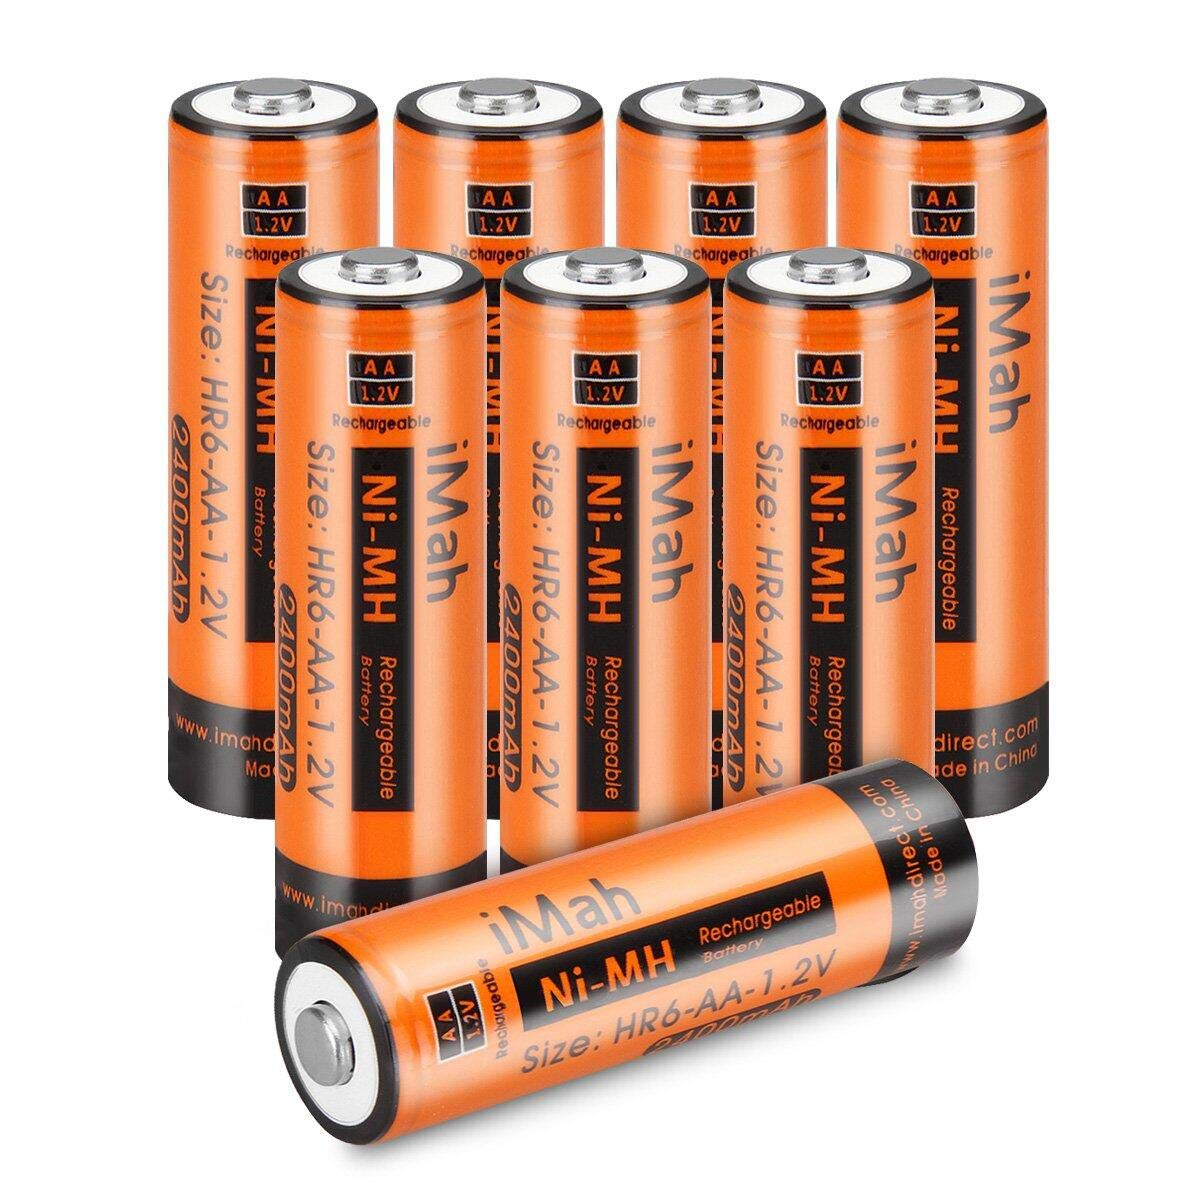 iMah HR6 AA Rechargeable Batteries Ni-MH 1.2V 2400mAh for Camera Weather Radio Flashlight, Also Compatible with Panasonic BK-3MCCA8BA BK-3HCCA8BA BK-3MCCA4BA BK-3HCCE4BE, Pack of 8